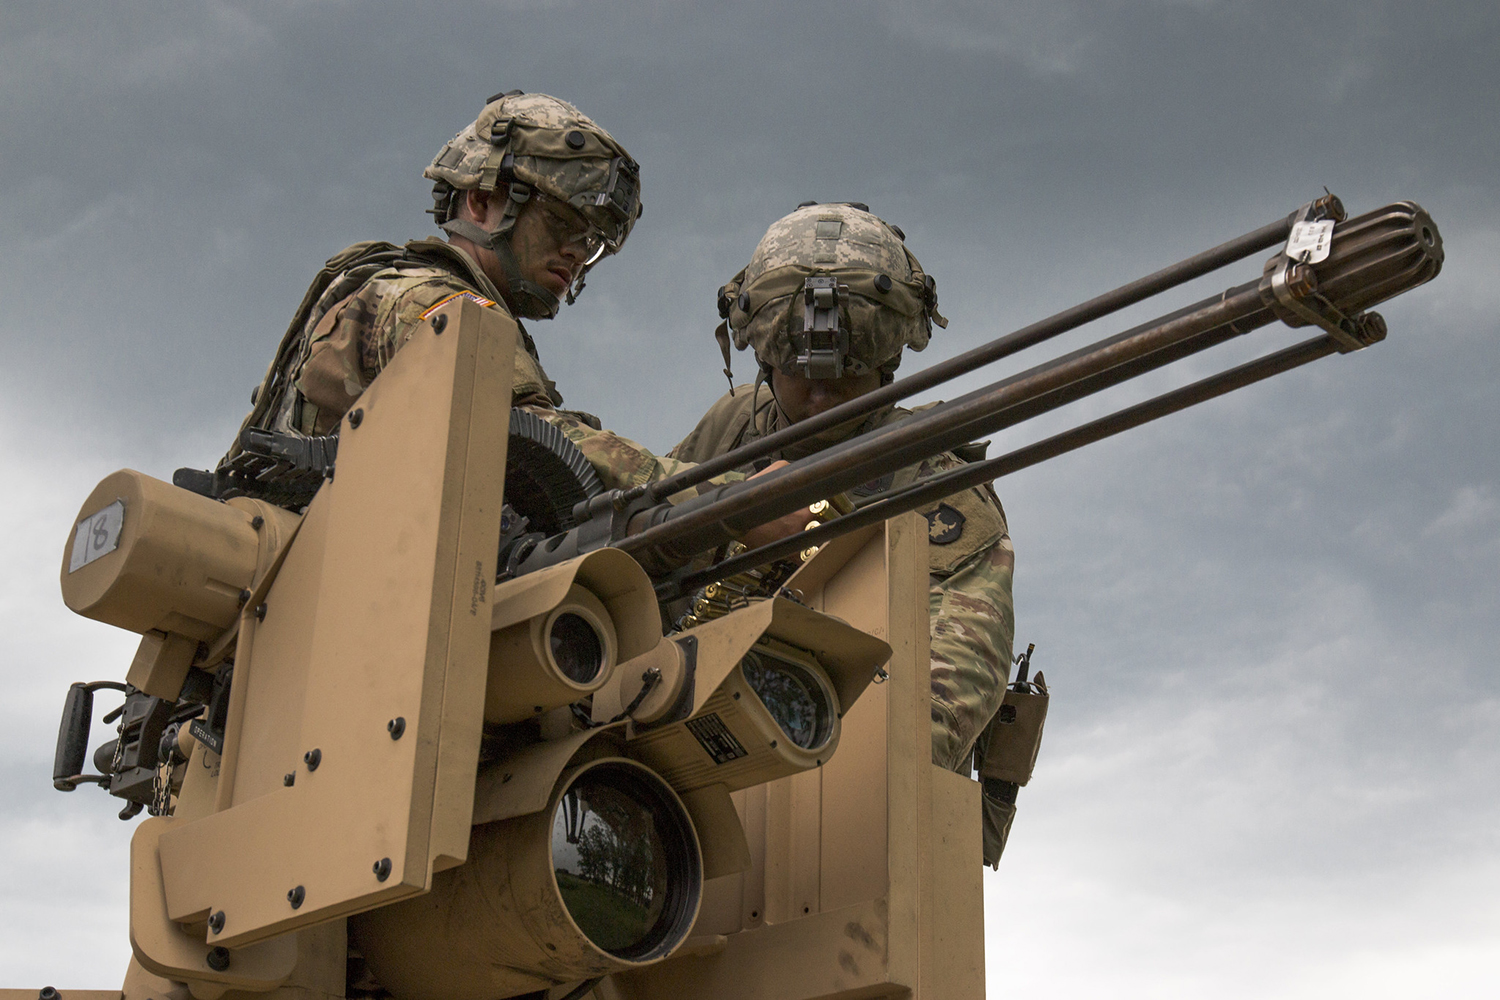 Iowa Army National Guard soldiers load a Common Remotely Operated Weapon Station during an eXportable Combat Training Capability rotation at Camp Ripley, Minn., on July 19, 2019. (Spc. Zachary M. Zippe/Army National Guard)